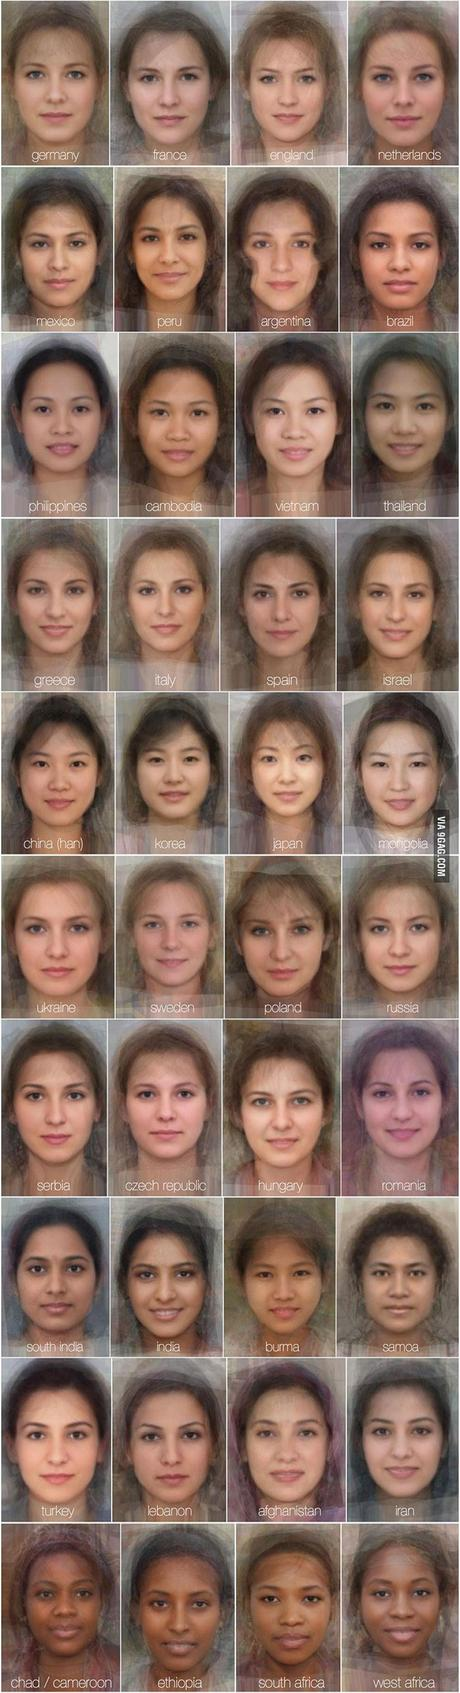 University of Glasgow - average female face from 40 countries - all of them uber-alluring